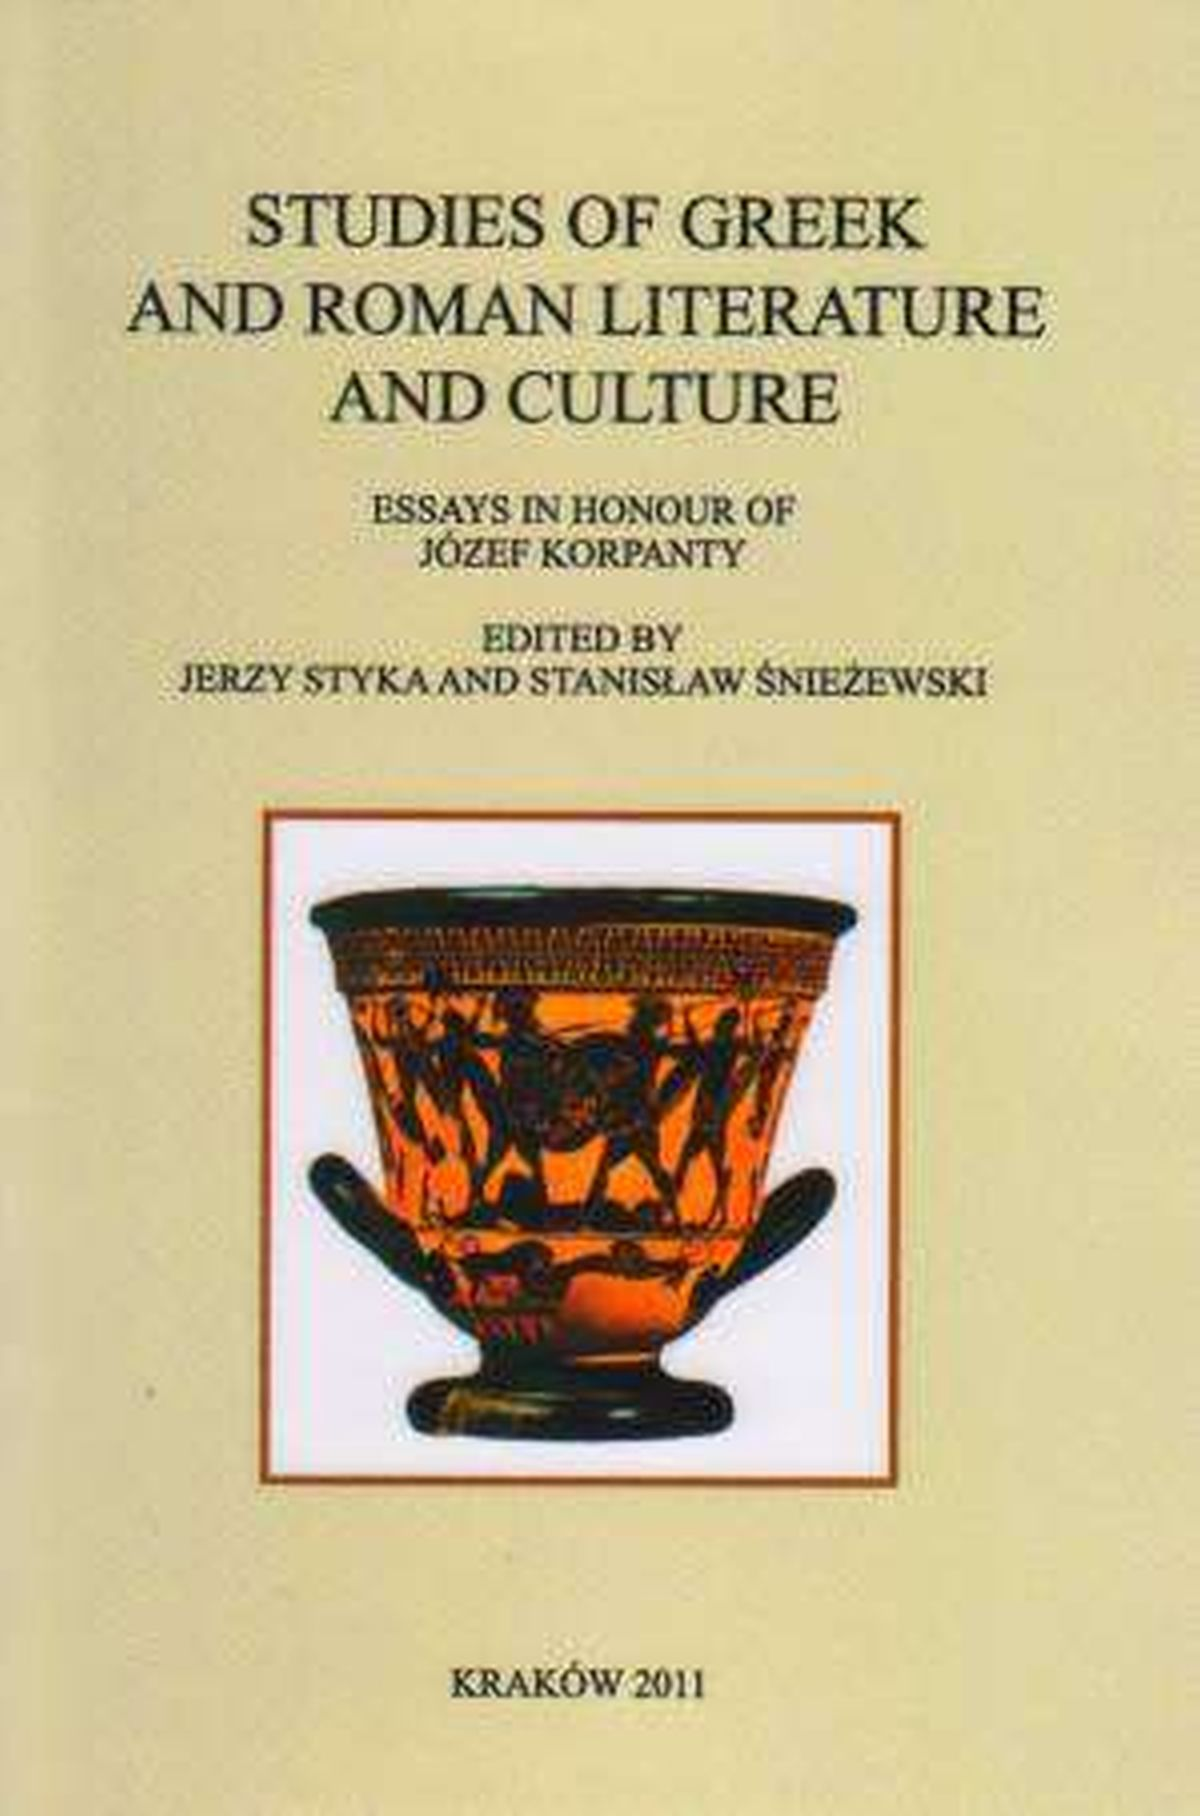 Classica Cracoviensia vol. 14: Studies of Greek and Roman literature and culture. Essays in honour of Józef Korpanty